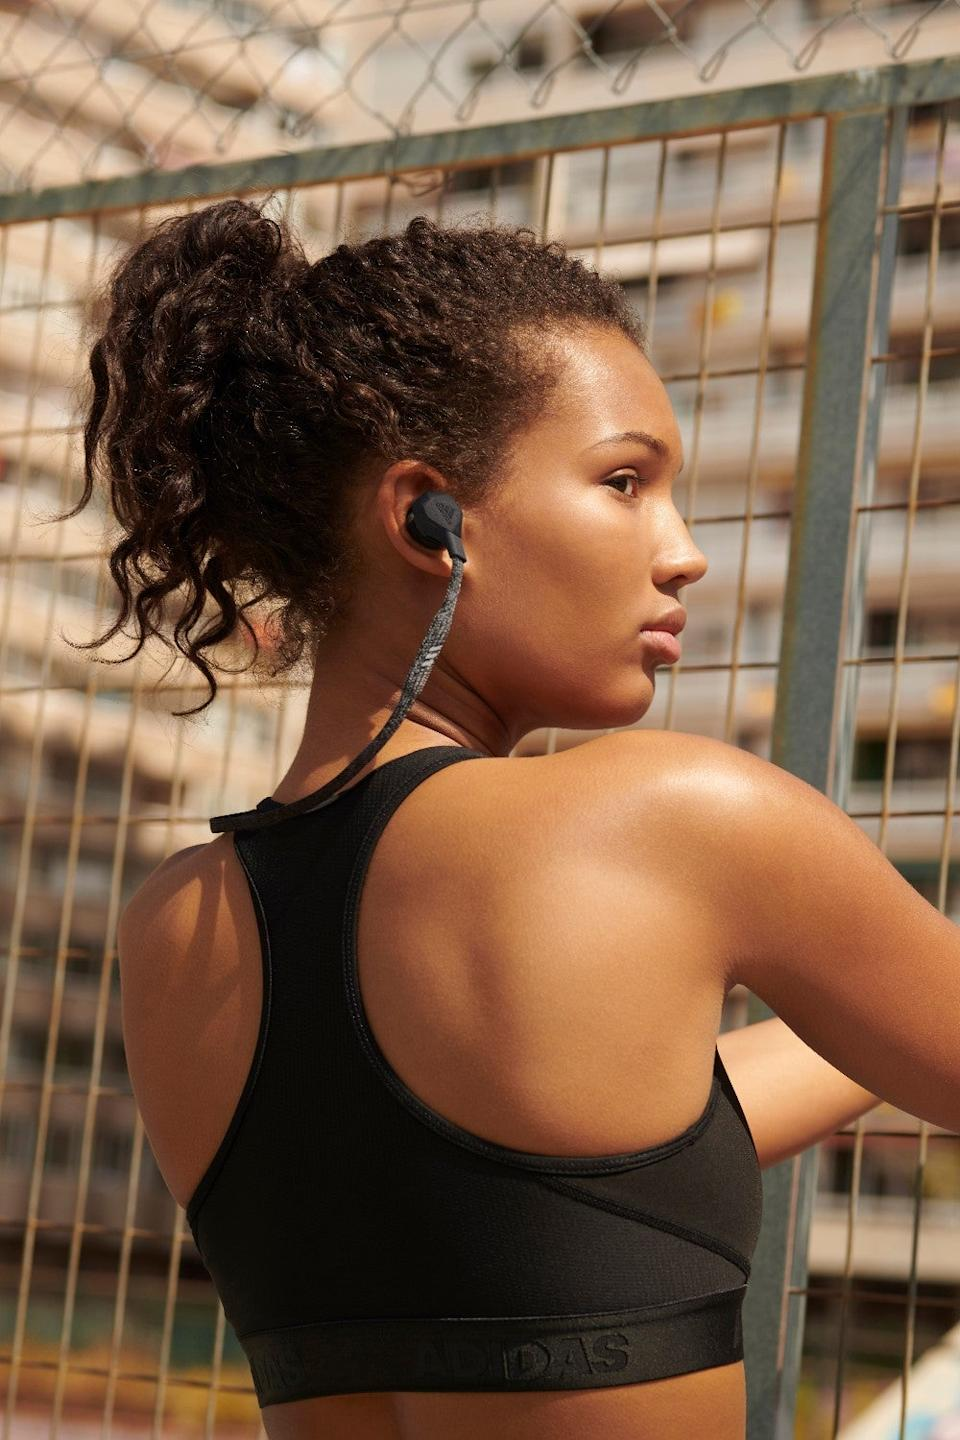 Adidas's new wireless headphones are designed to support your gym workouts (Adidas)